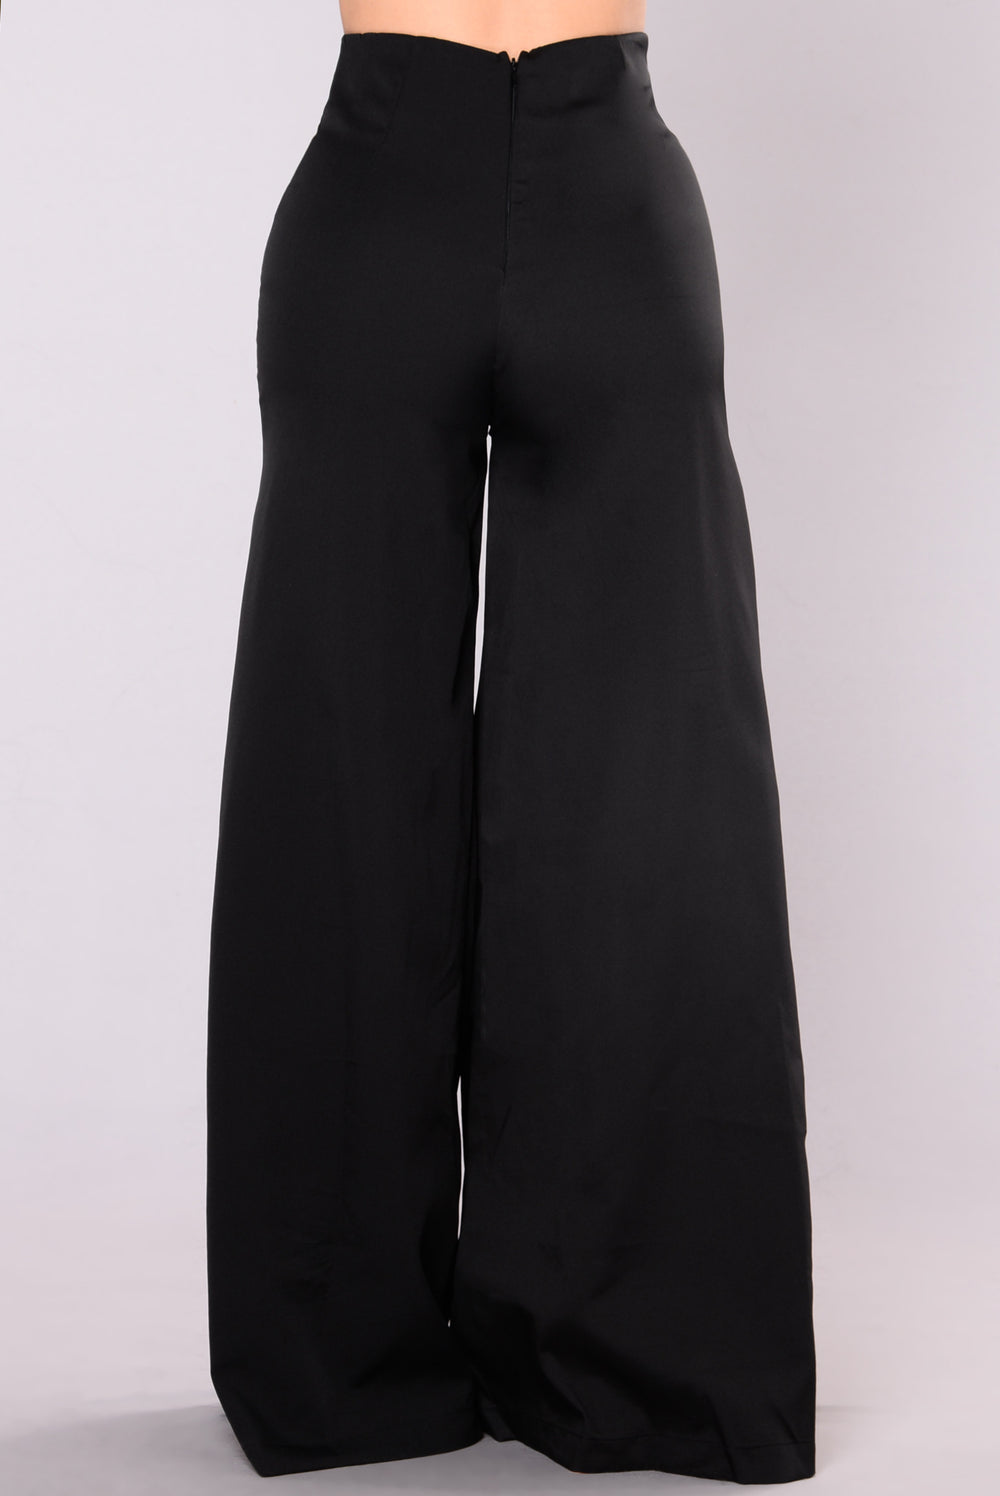 Odelia Wide Leg Pants - Black